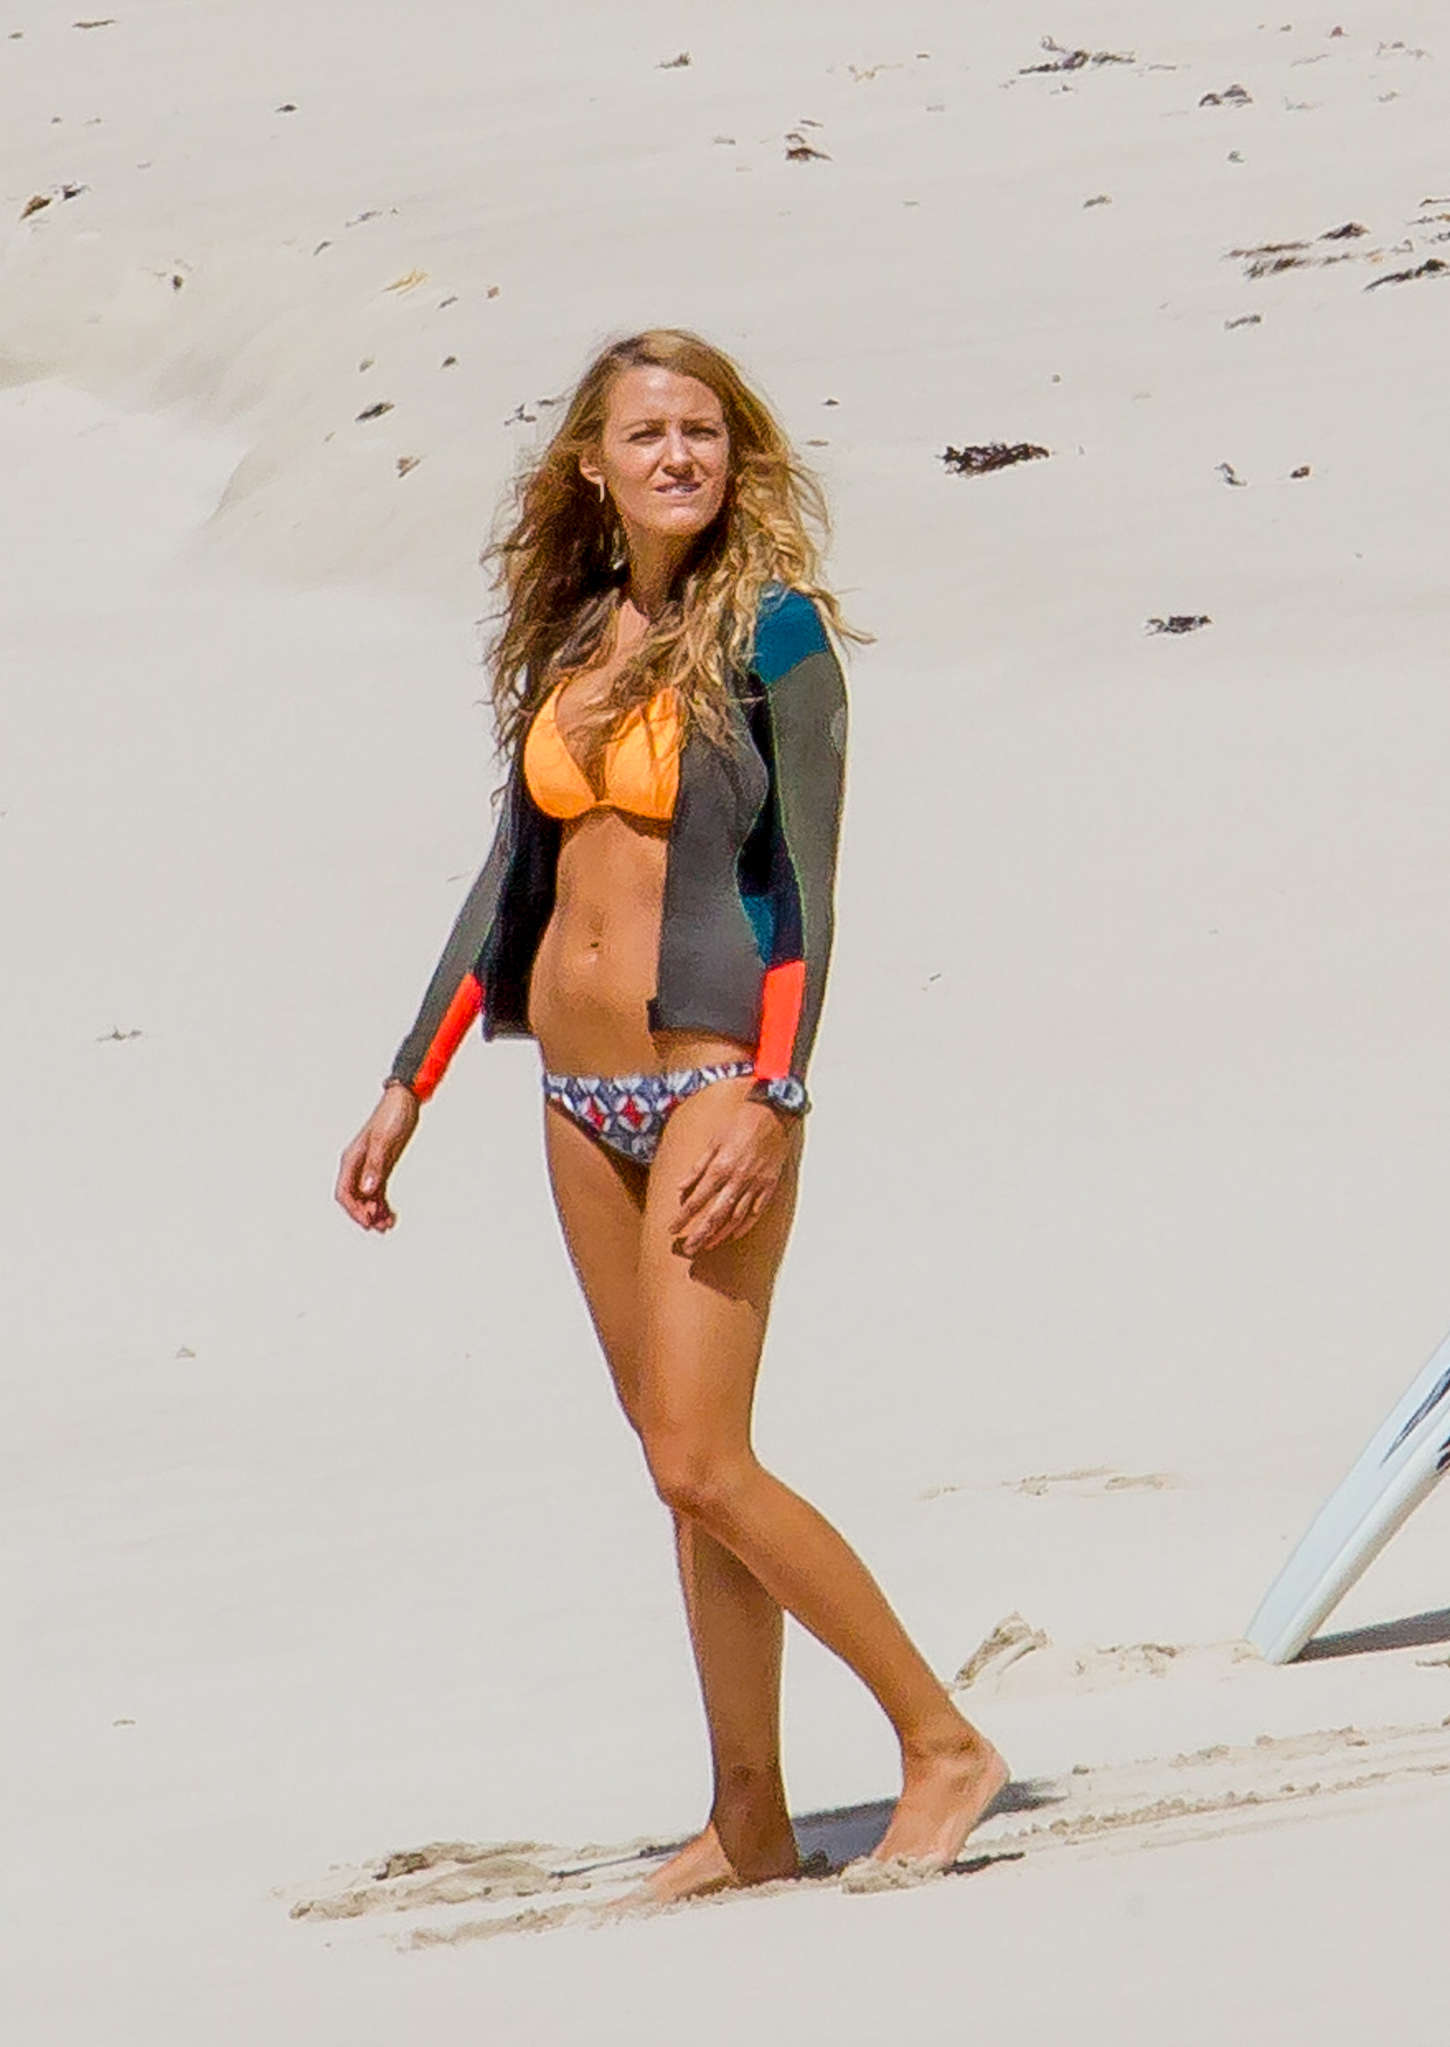 Blake Lively in Bikini on the set of 'The Shallows' in New South Wales